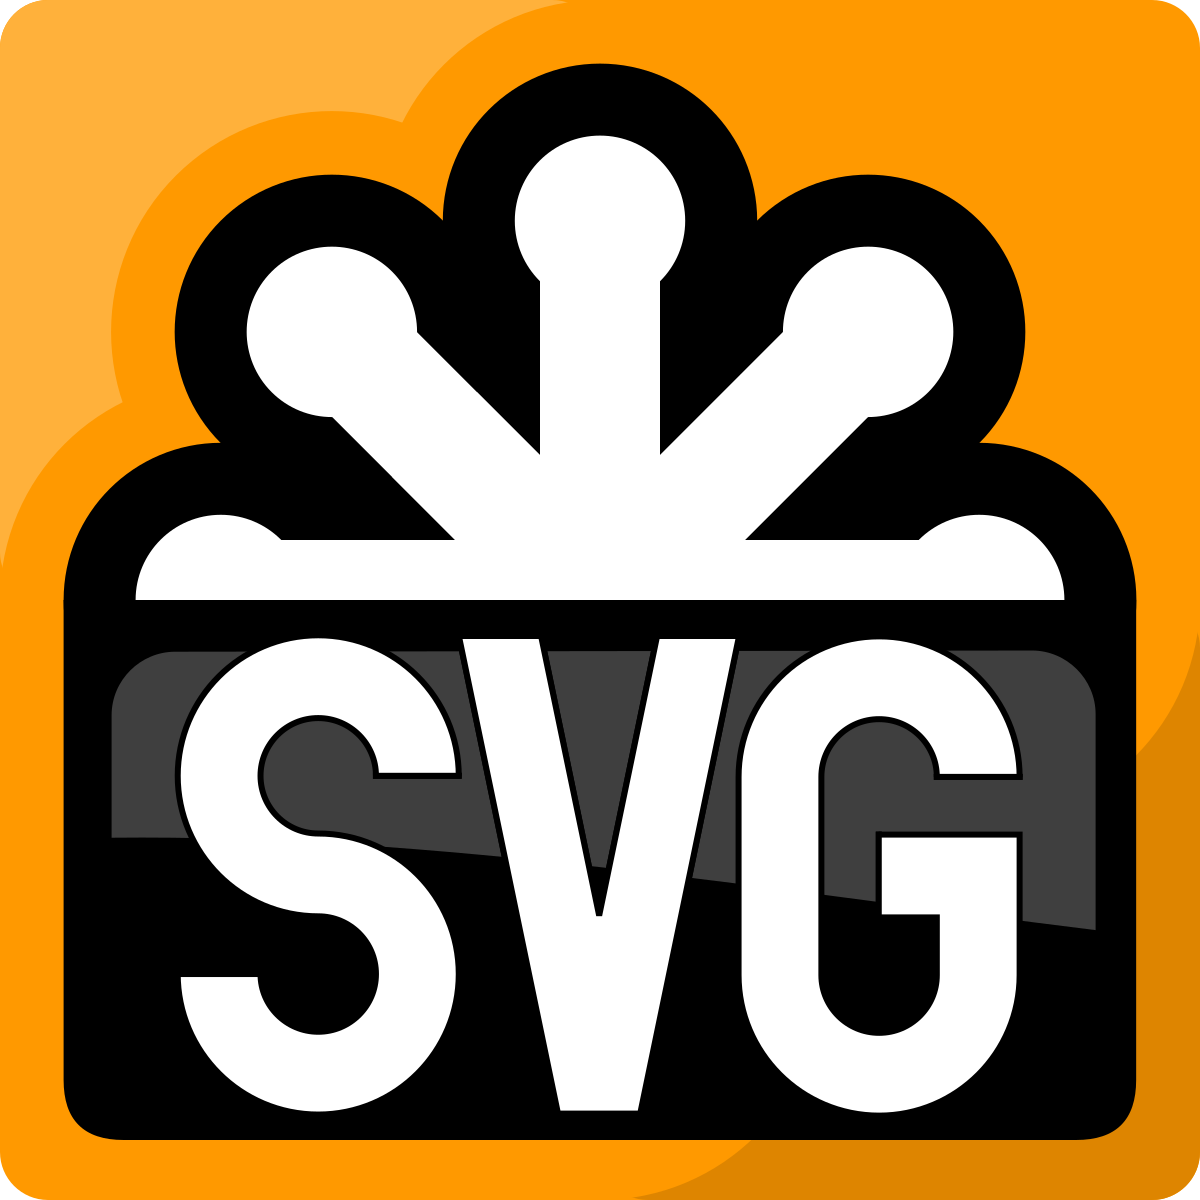 Mage svg #20, Download drawings